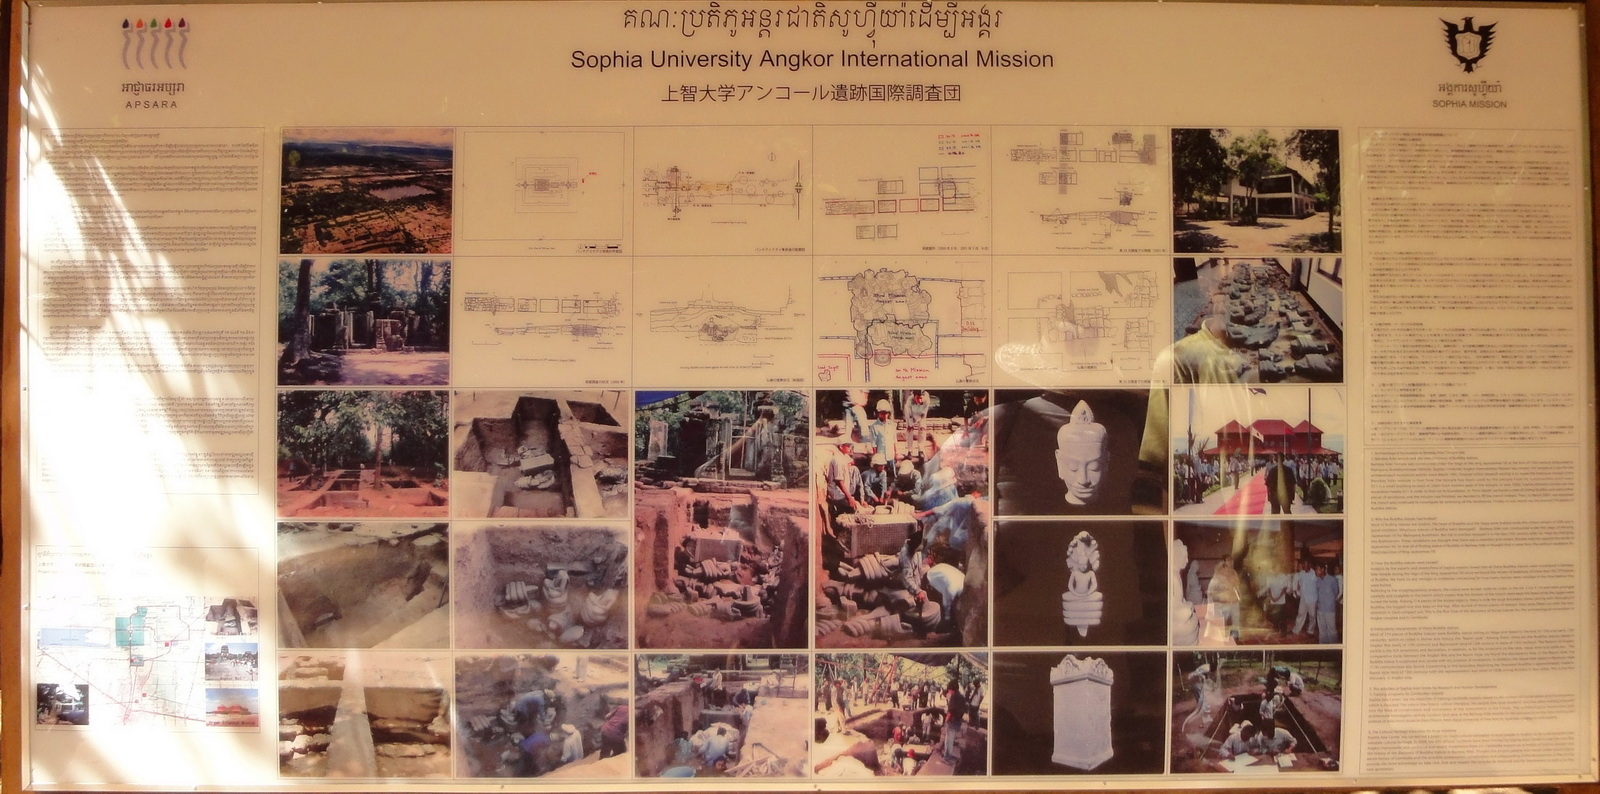 1 Banteay Kdei Temple sign board about the Sophia Mission 05